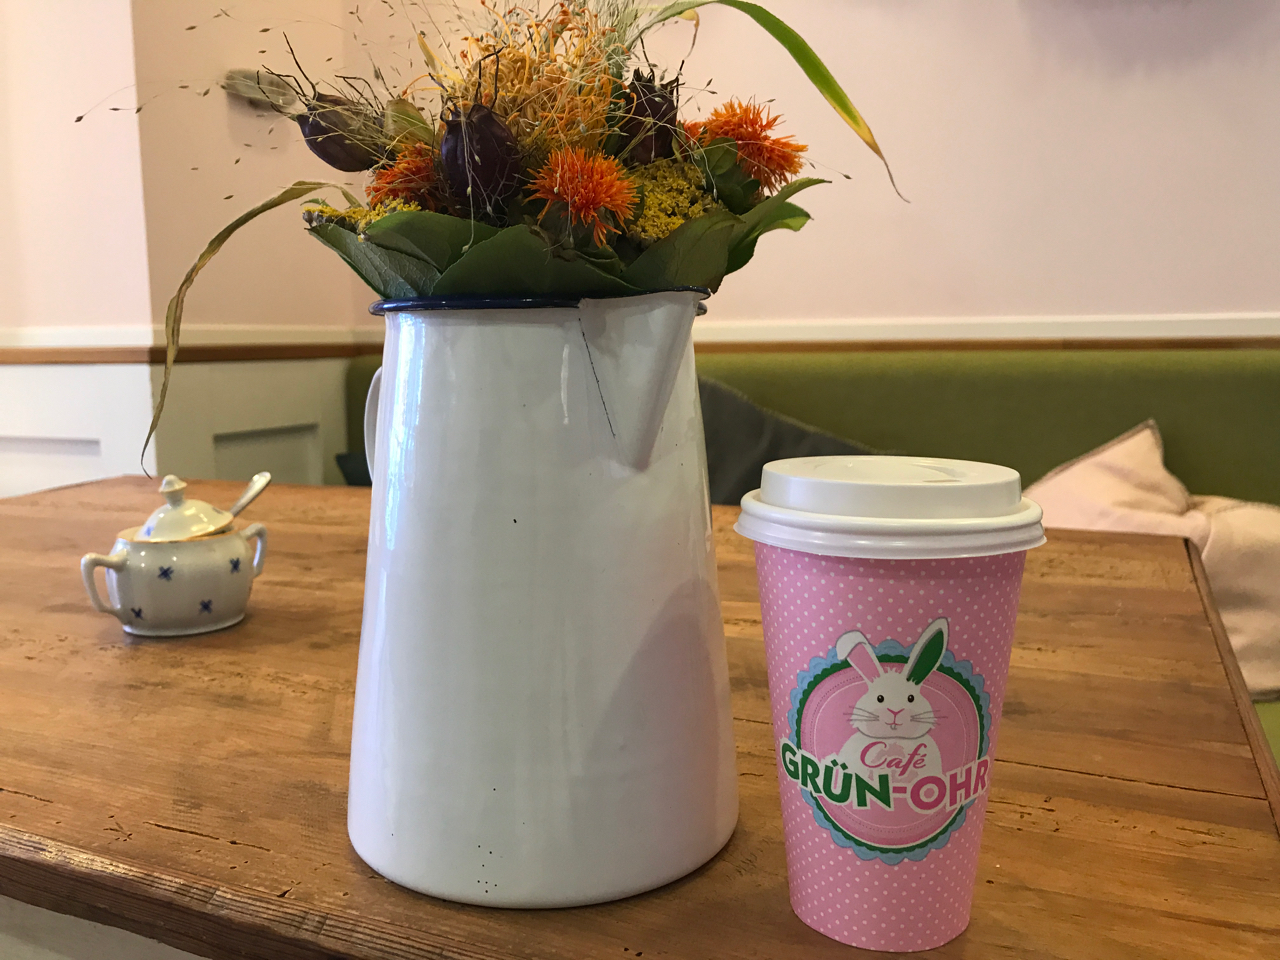 A cappuccino in Katjes Café Grün-Ohr's signature pink bunny cup in Berlin, Germany. The cup sits beside a bouquet of flowers in a pitcher on a wooden table. Photo Courtesy of FoodWaterShoes